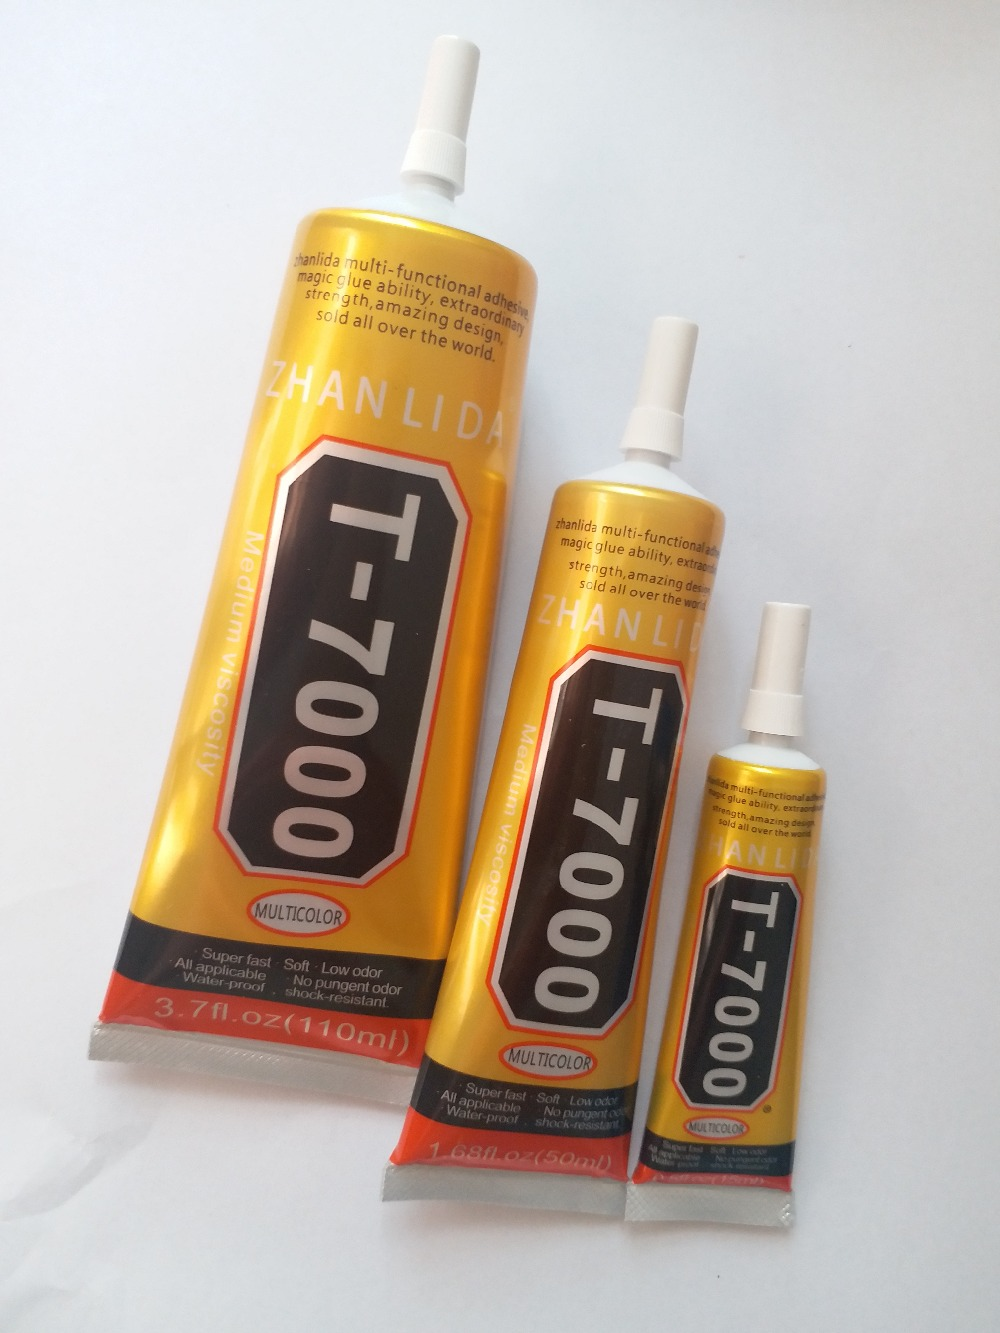 3pcs T 7000 Glue 110ml 50ml 15ml Black Super Adhesive Cell Phone Touch Screen Repair Frame Sealant Diy Craft Jewelry Tools T700|tool tool|tool diy|tools jewelry - title=